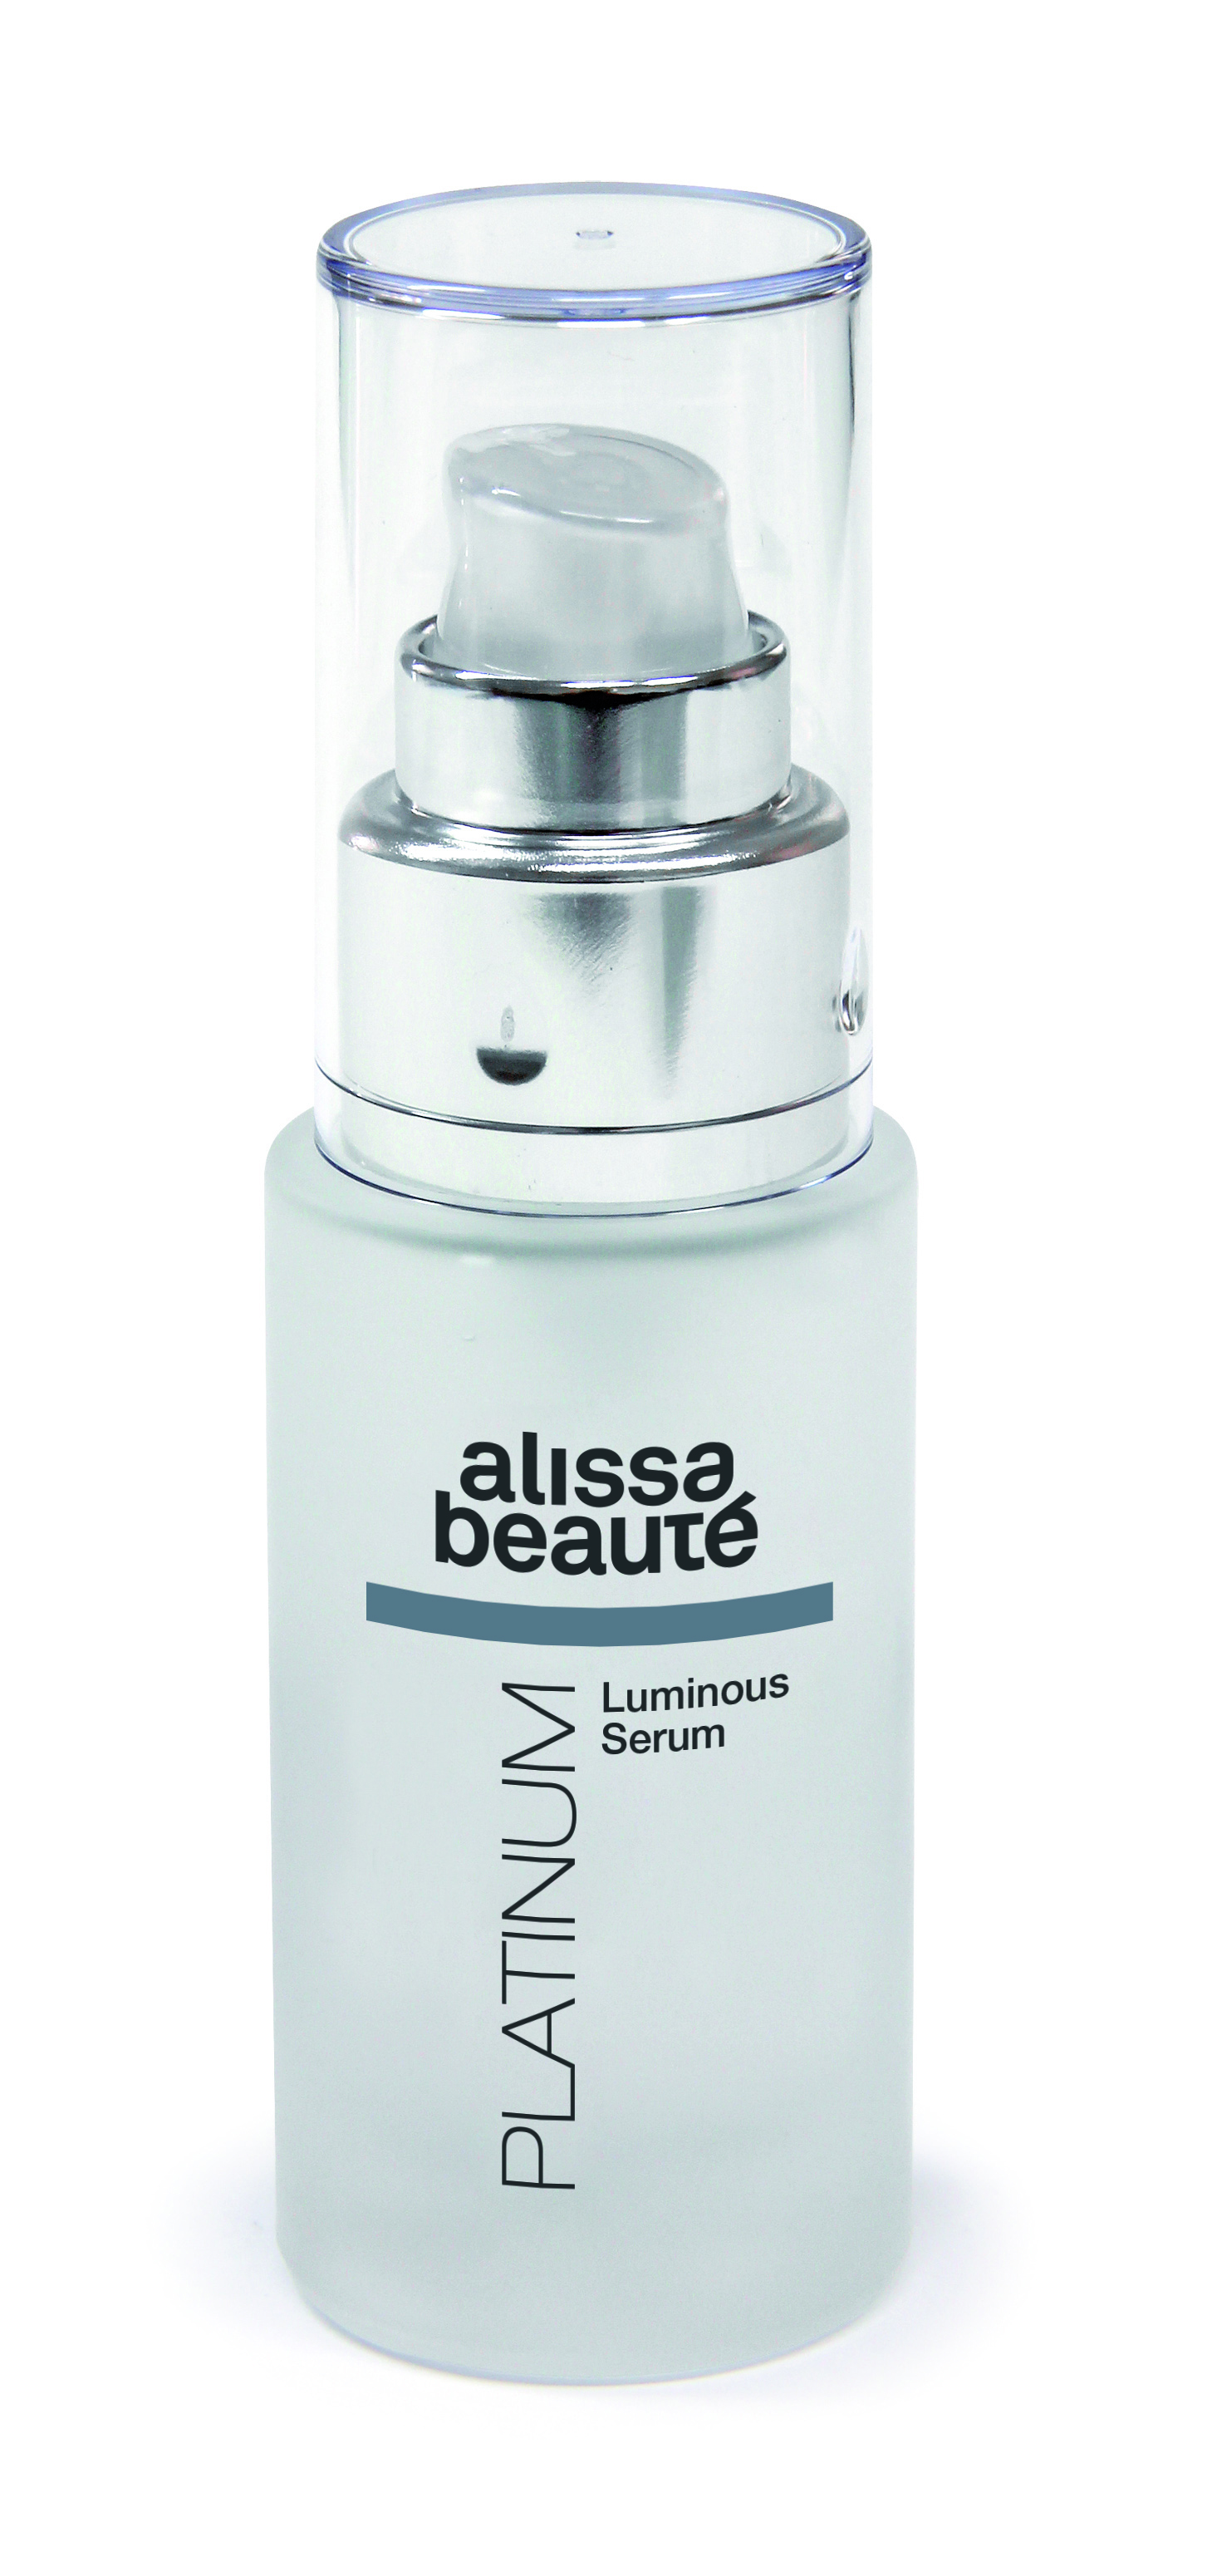 267_Platinum Luminous Serum 30ml fl